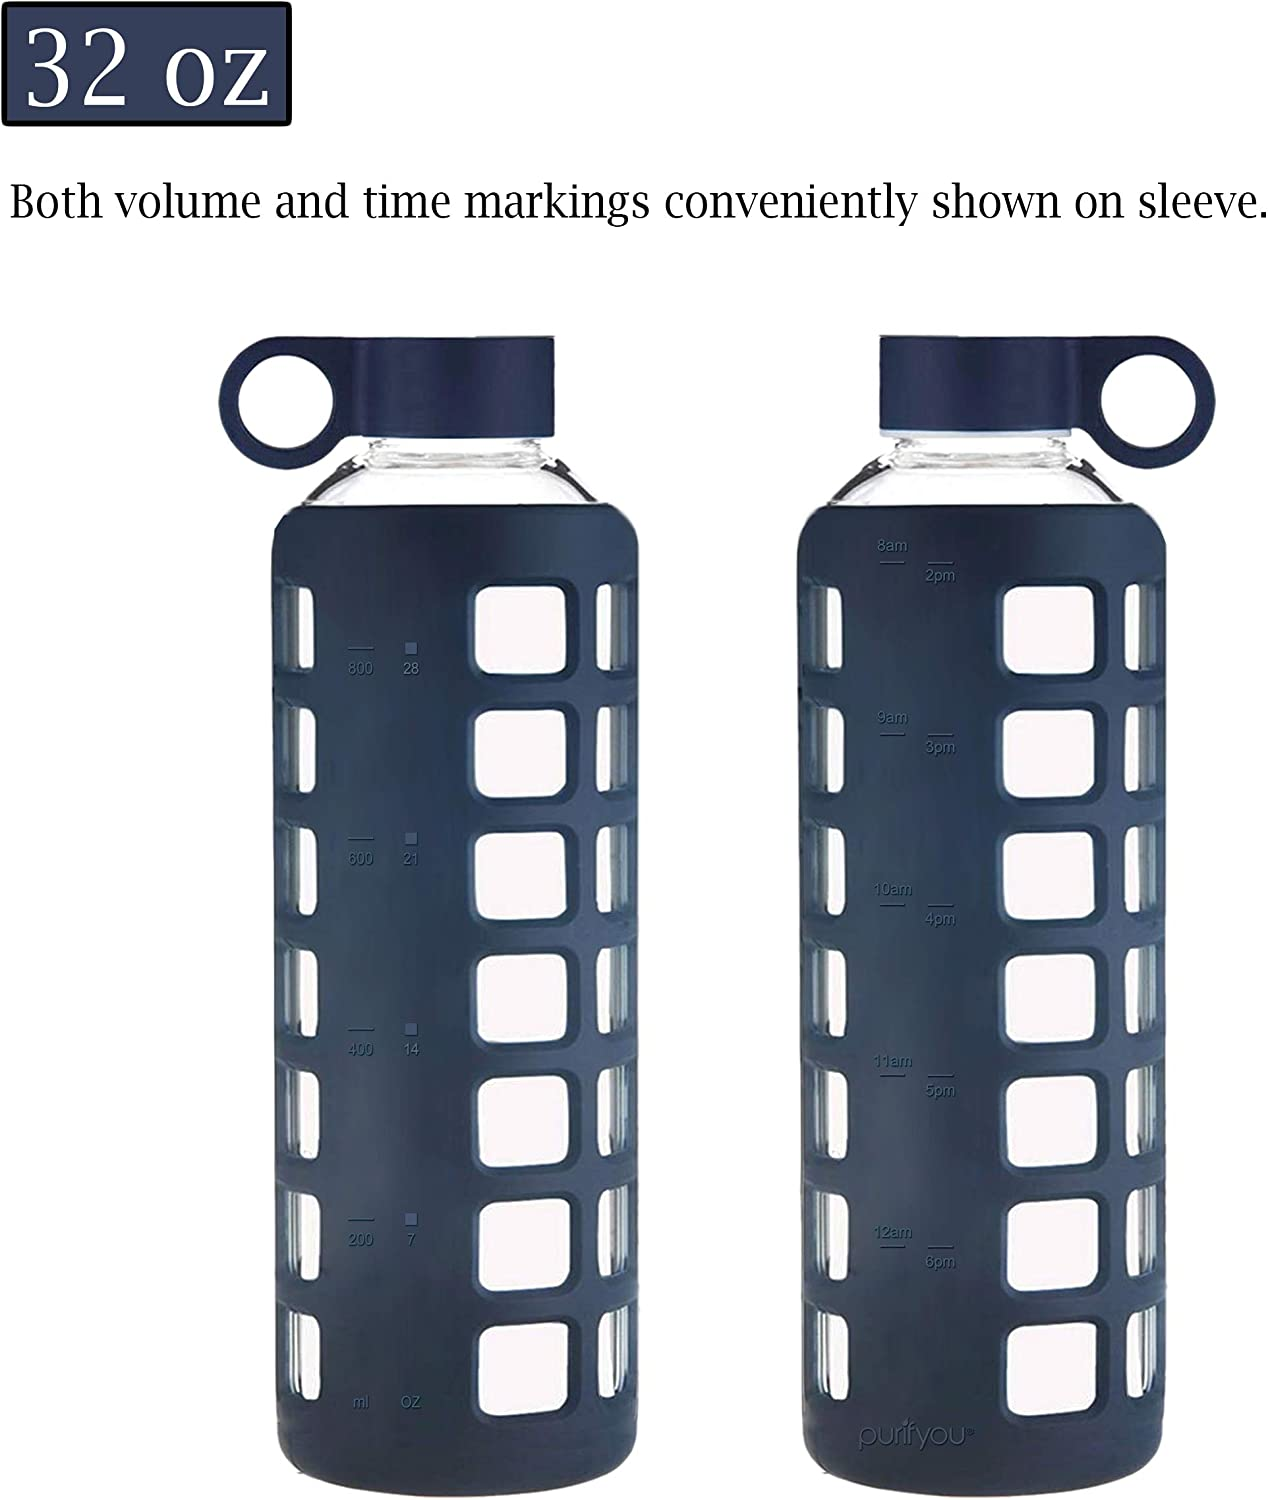 32 oz 12//22 purifyou Premium Glass Water Bottle with Non-Slip Silicone Sleeve and Stainless Steel Lid Insert